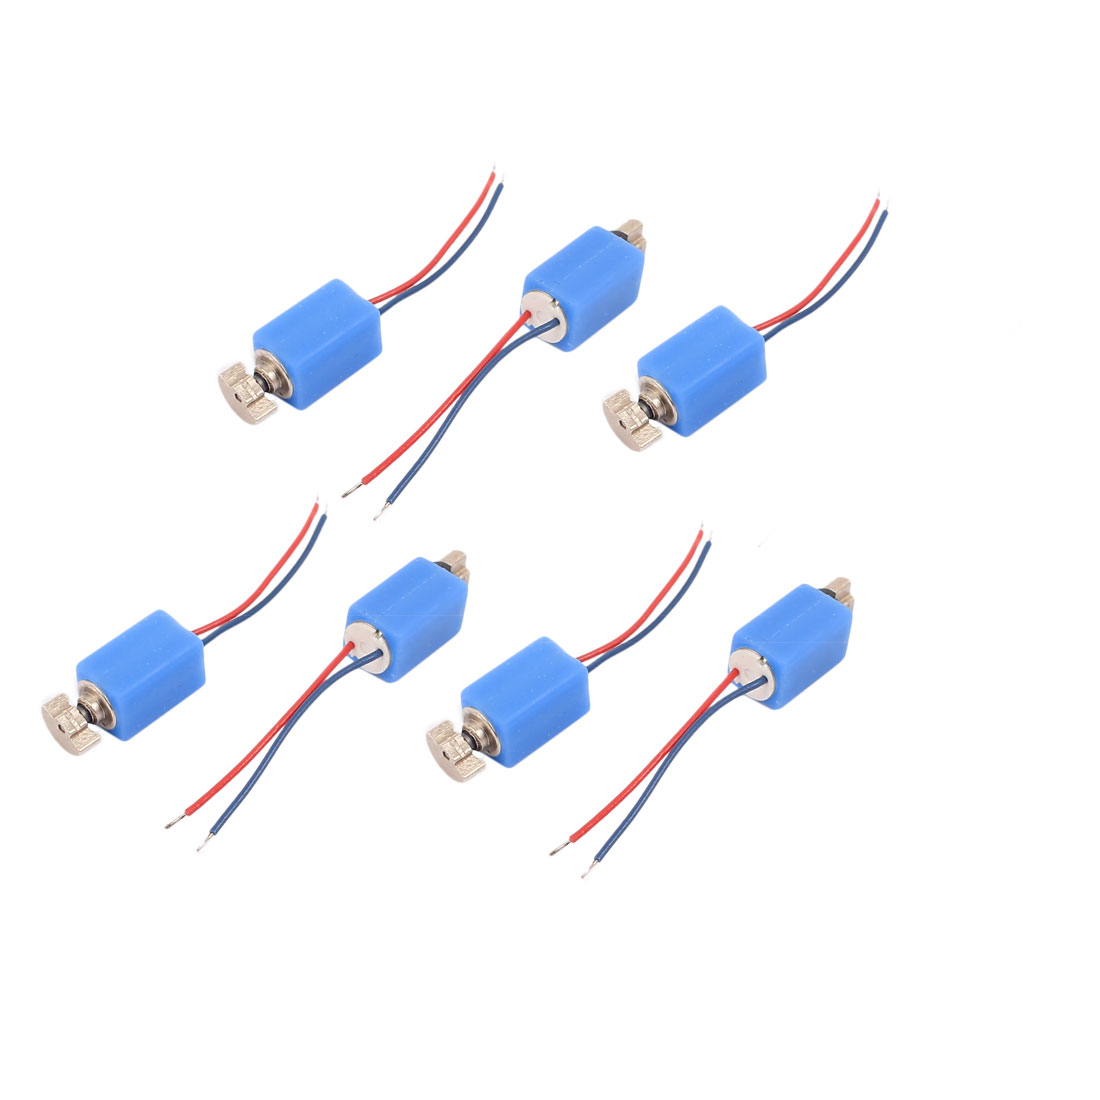 7 Pcs DC 3V 4 x 8mm 3500RPM Mini Vibration Motor Blue for Cell Phone